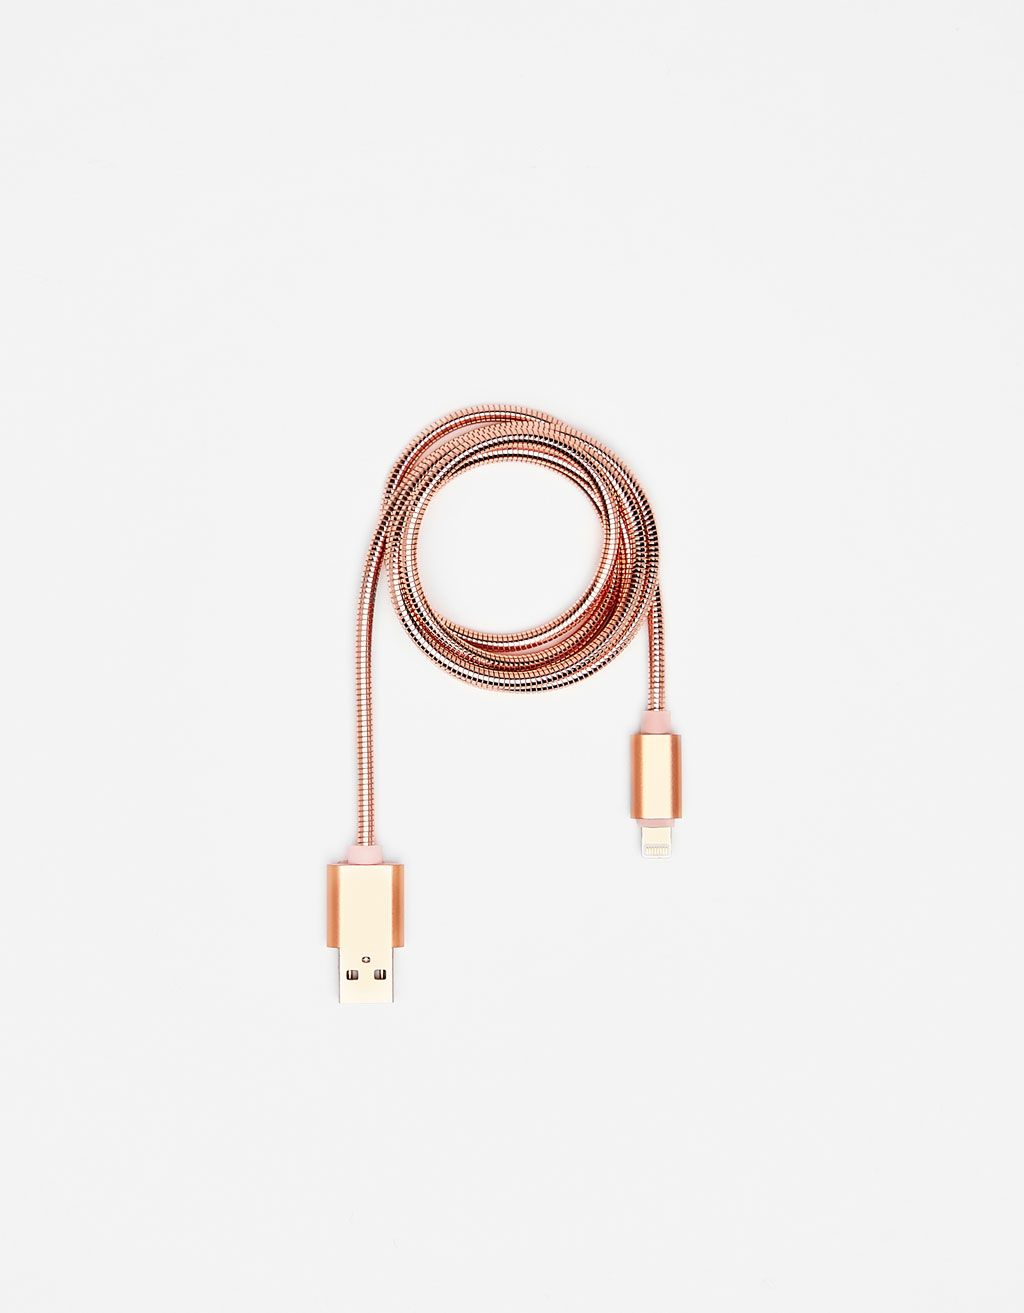 USB cable / Rose gold charger